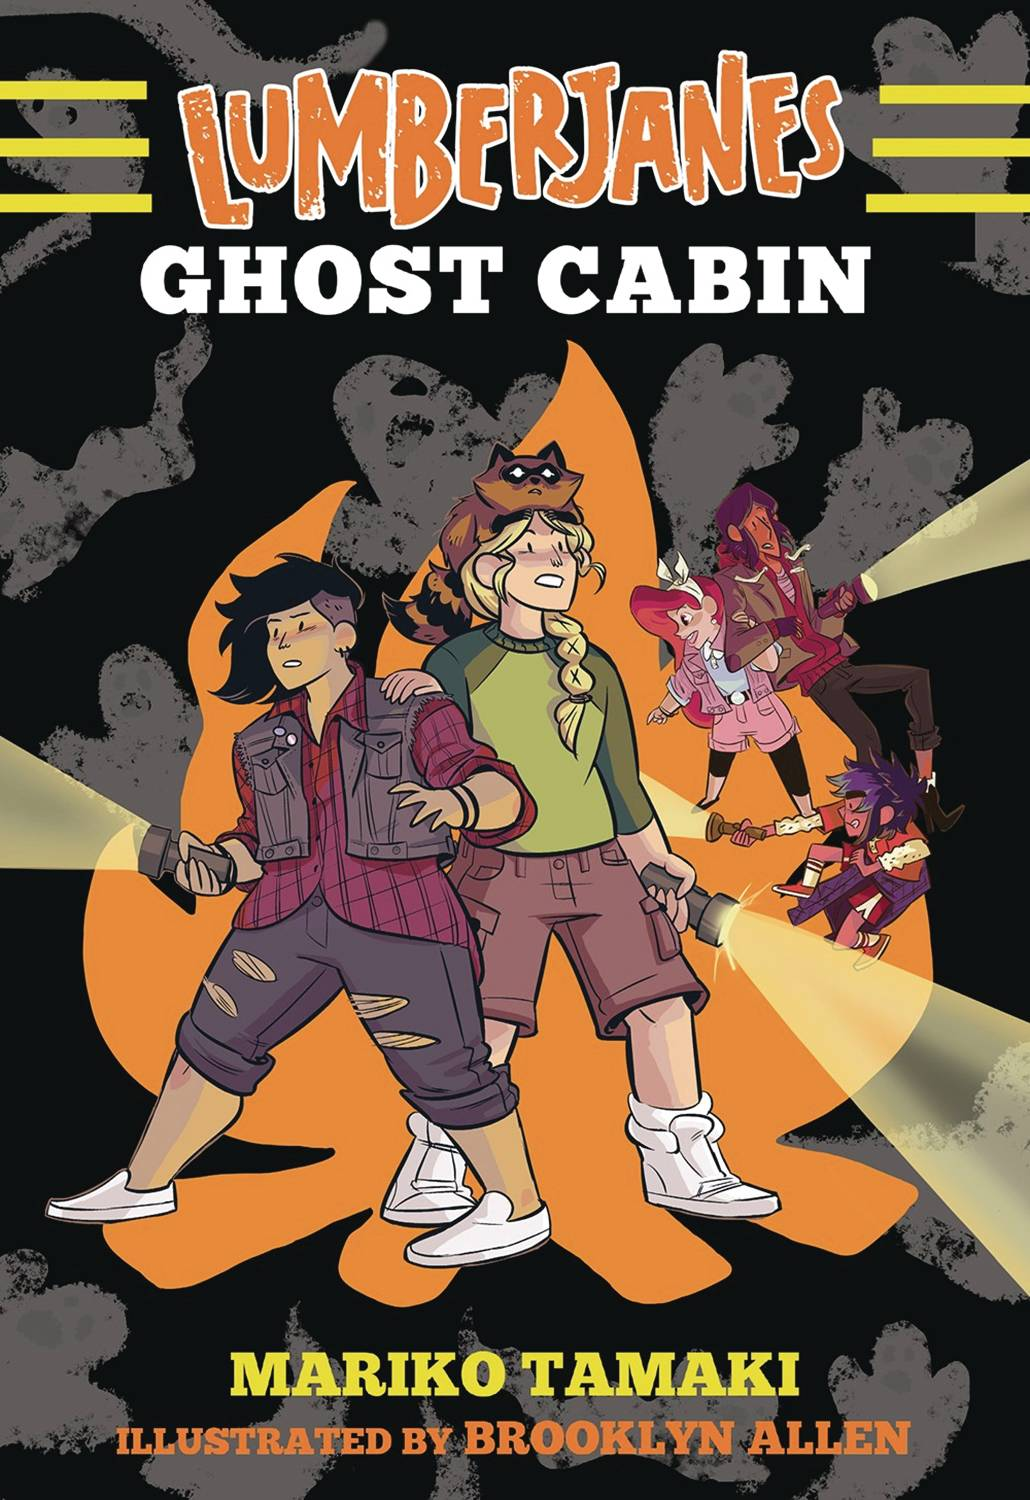 LUMBERJANES ILLUS NOVEL TP 04 GHOST CABIN